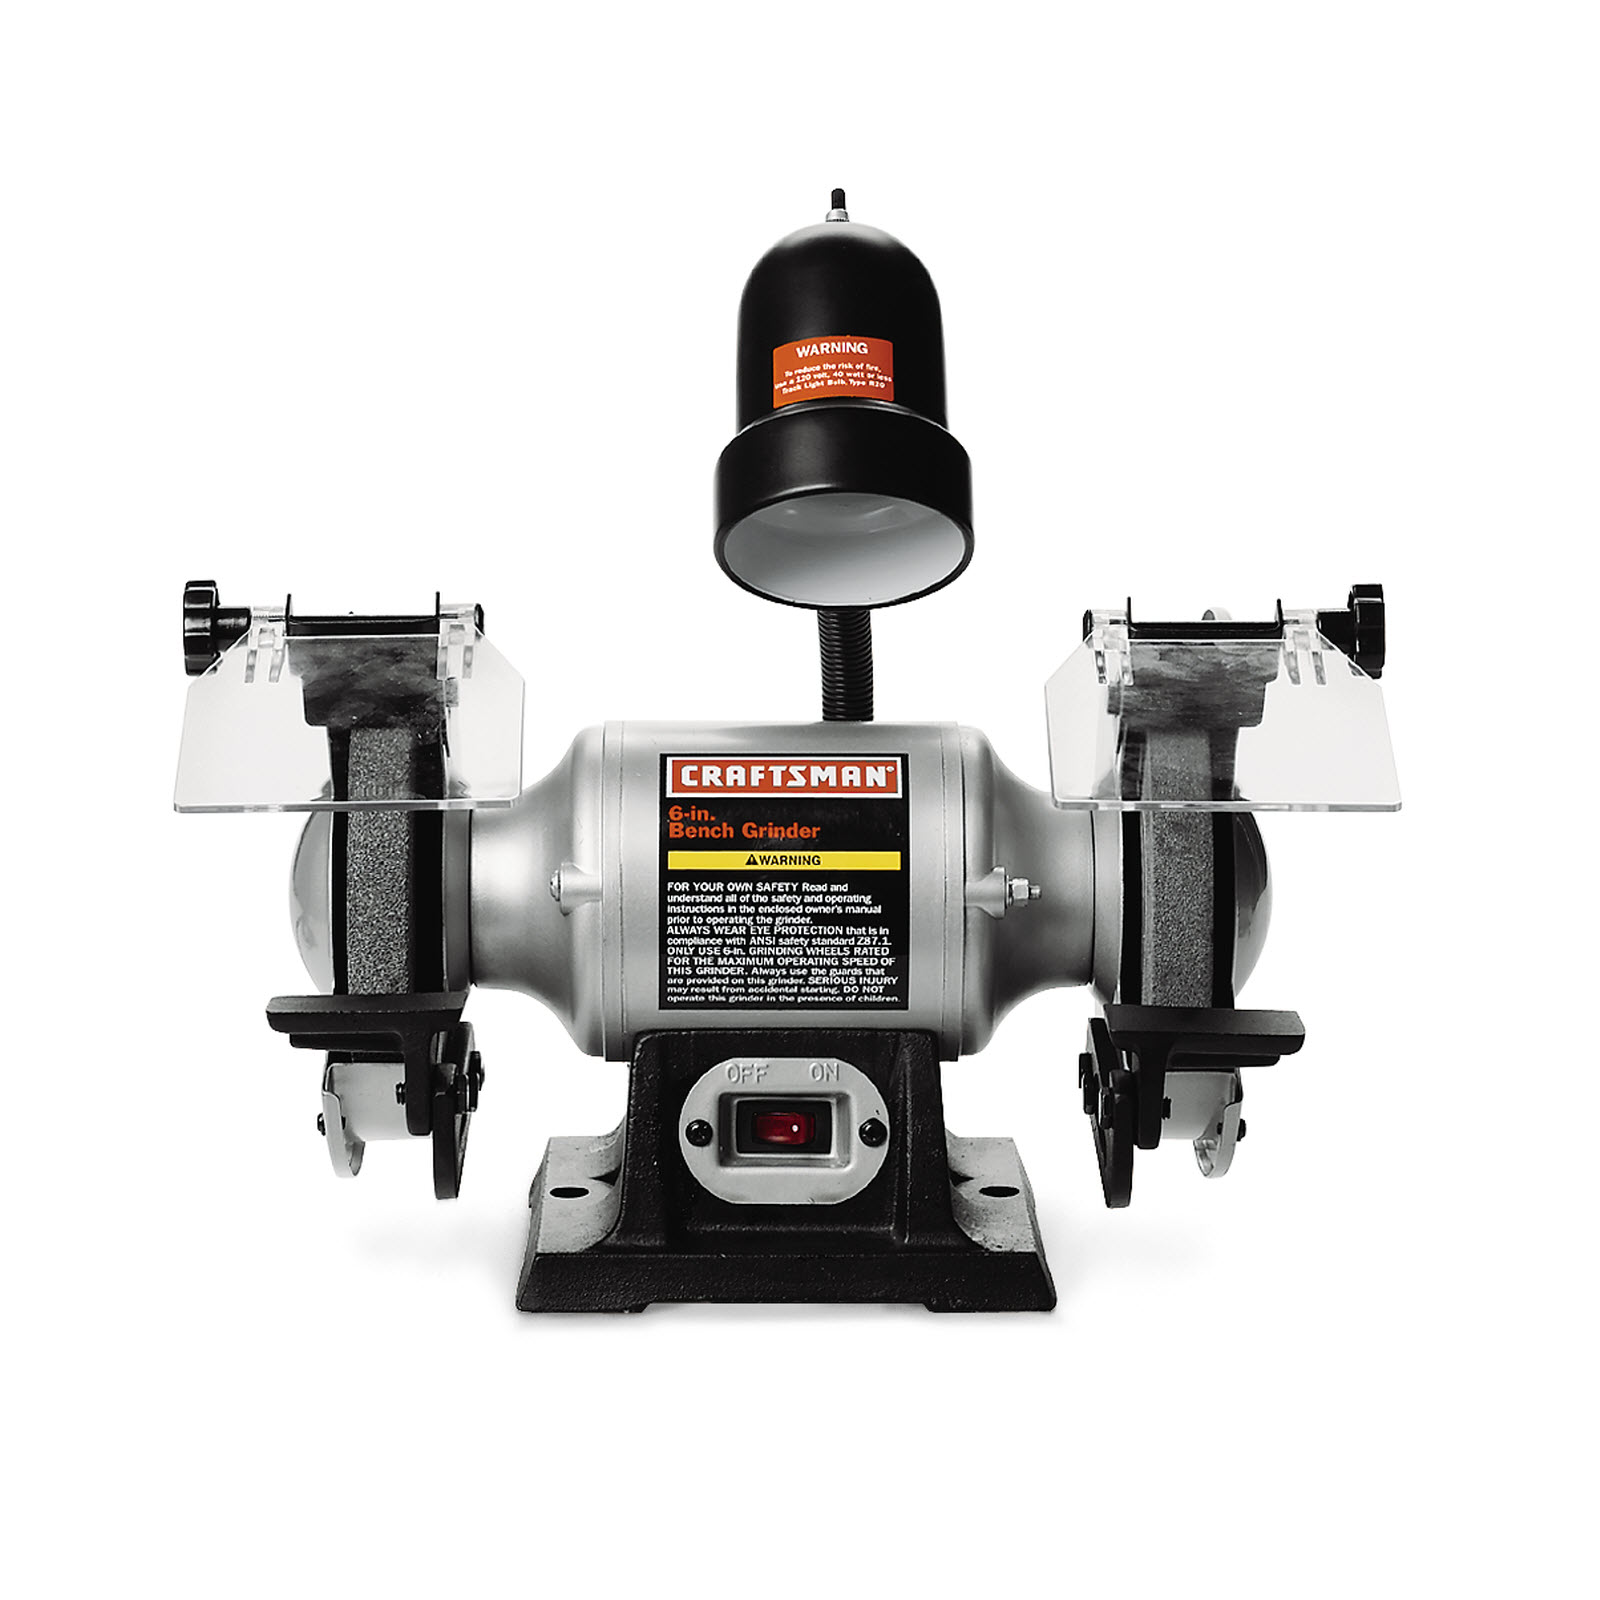 """Craftsman 1/6 hp 6"""" Bench Grinder with Lamp (21124)"""